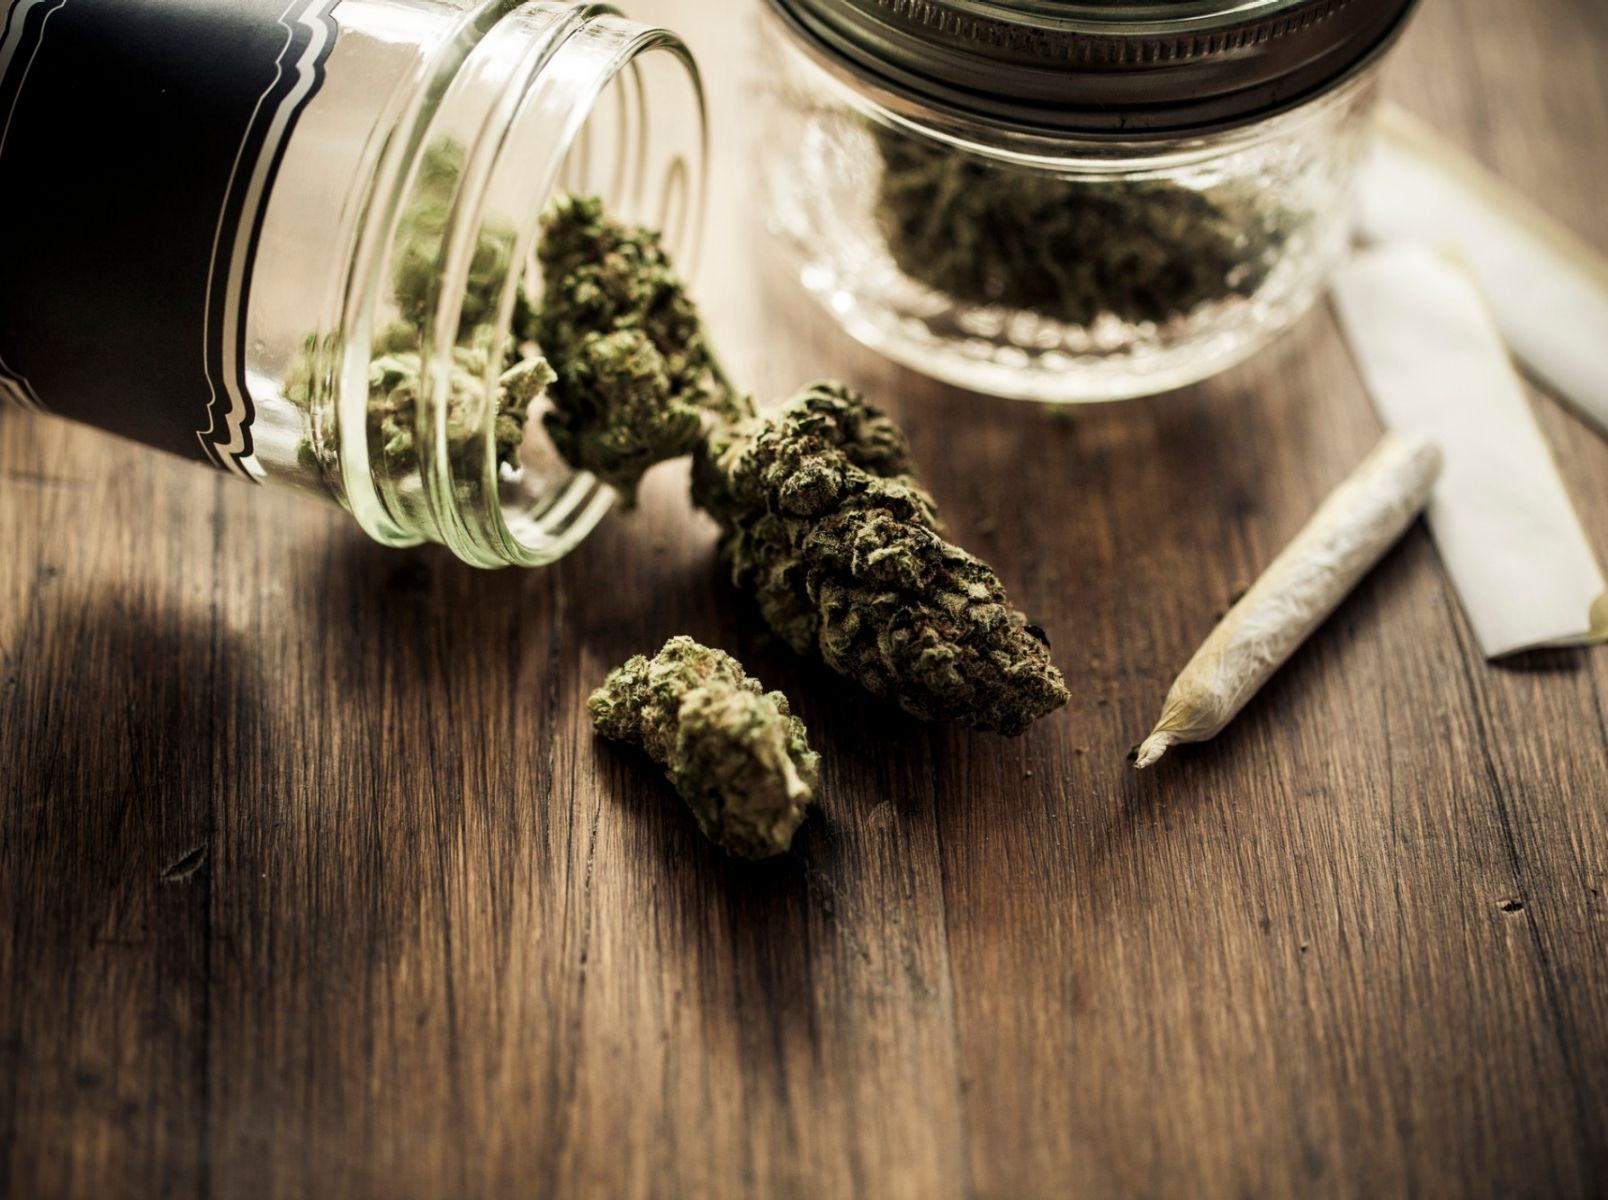 drug policy research center dprc rand recreational marijuana buds in glass jars next to a joint and rolling papers